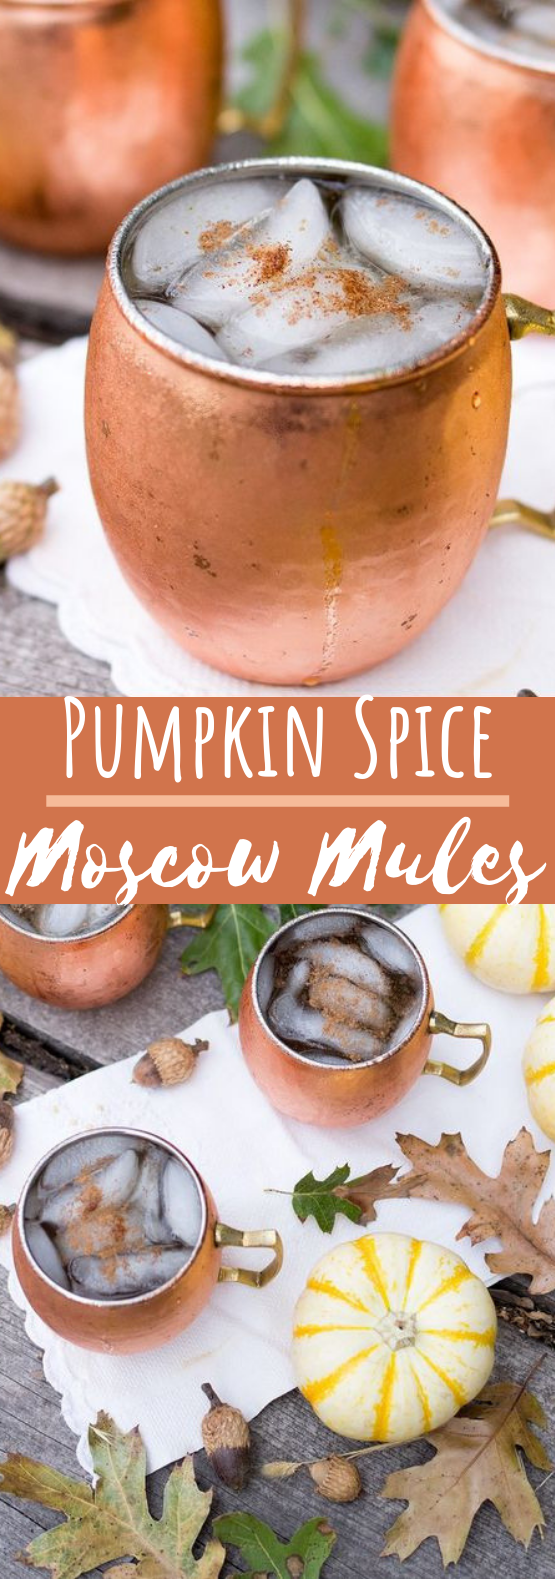 Pumpkin Spice Moscow Mules #drinks #cocktails